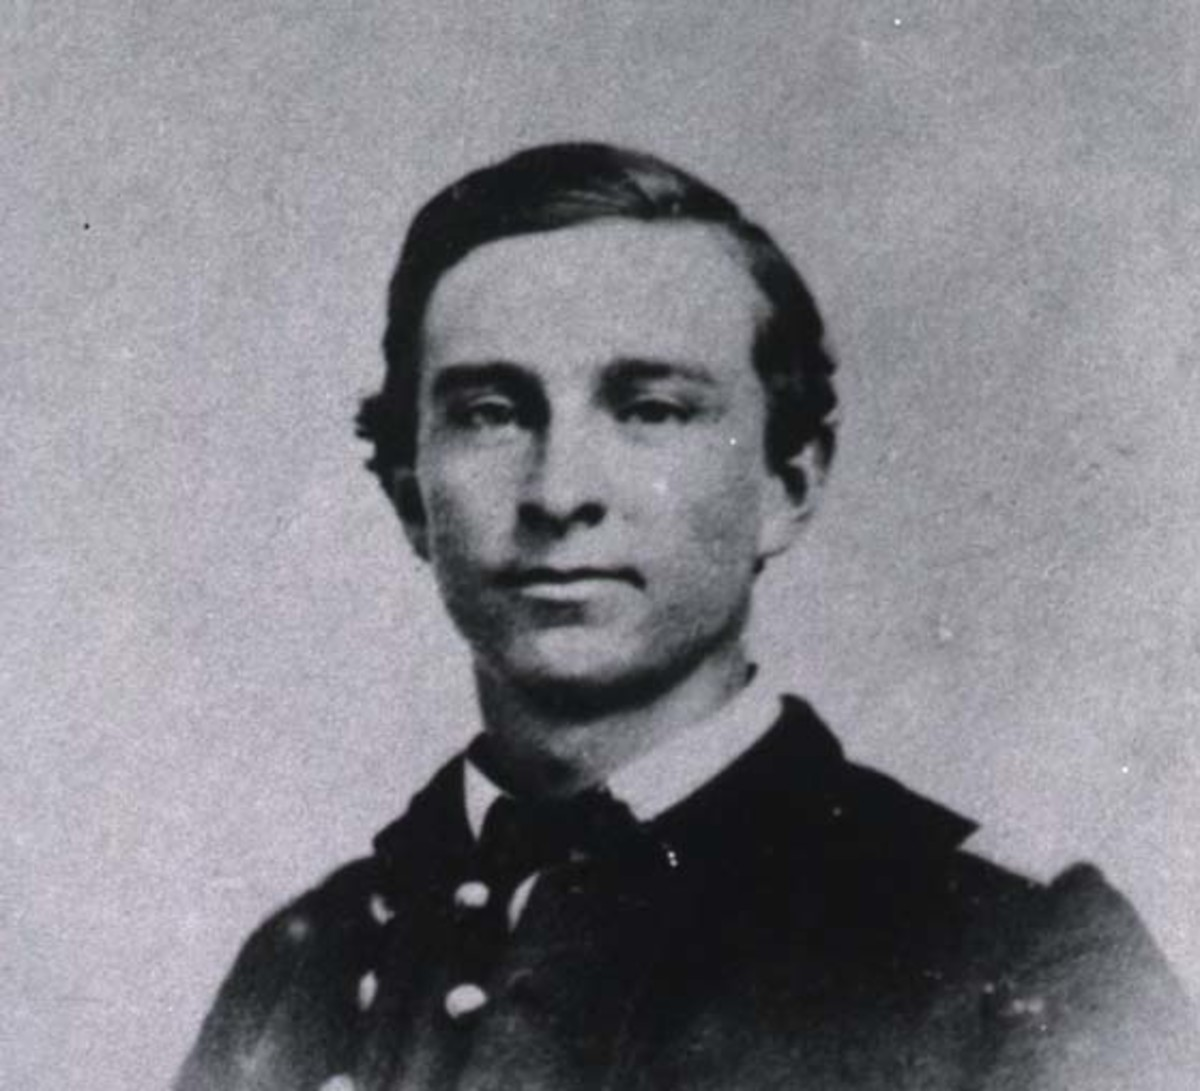 Dutton at 20; during the Civil War he enlisted in the 13th Wisconsin Infantry Regiment.